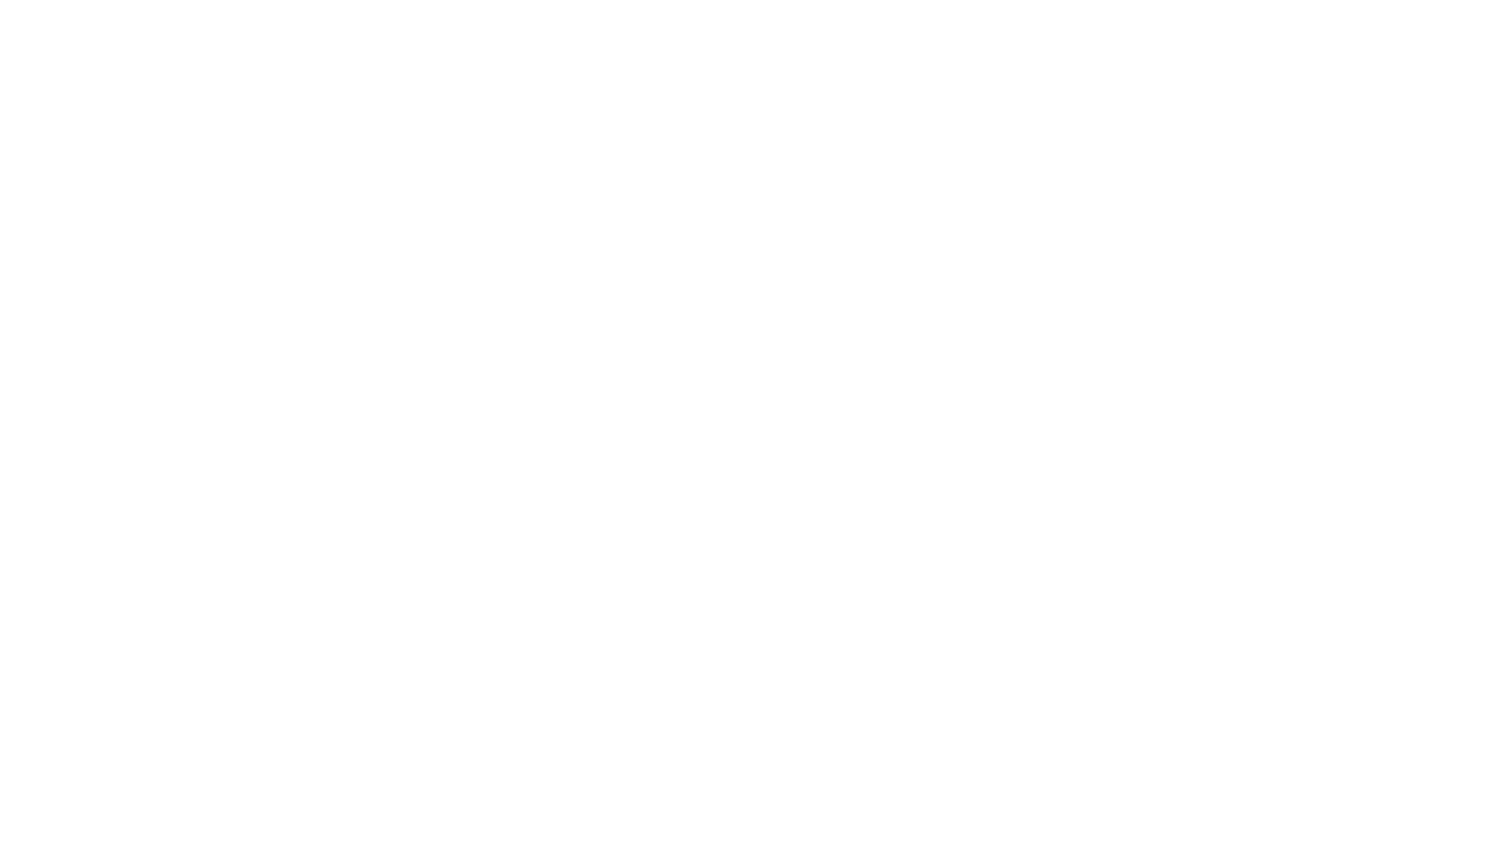 M4 Developers